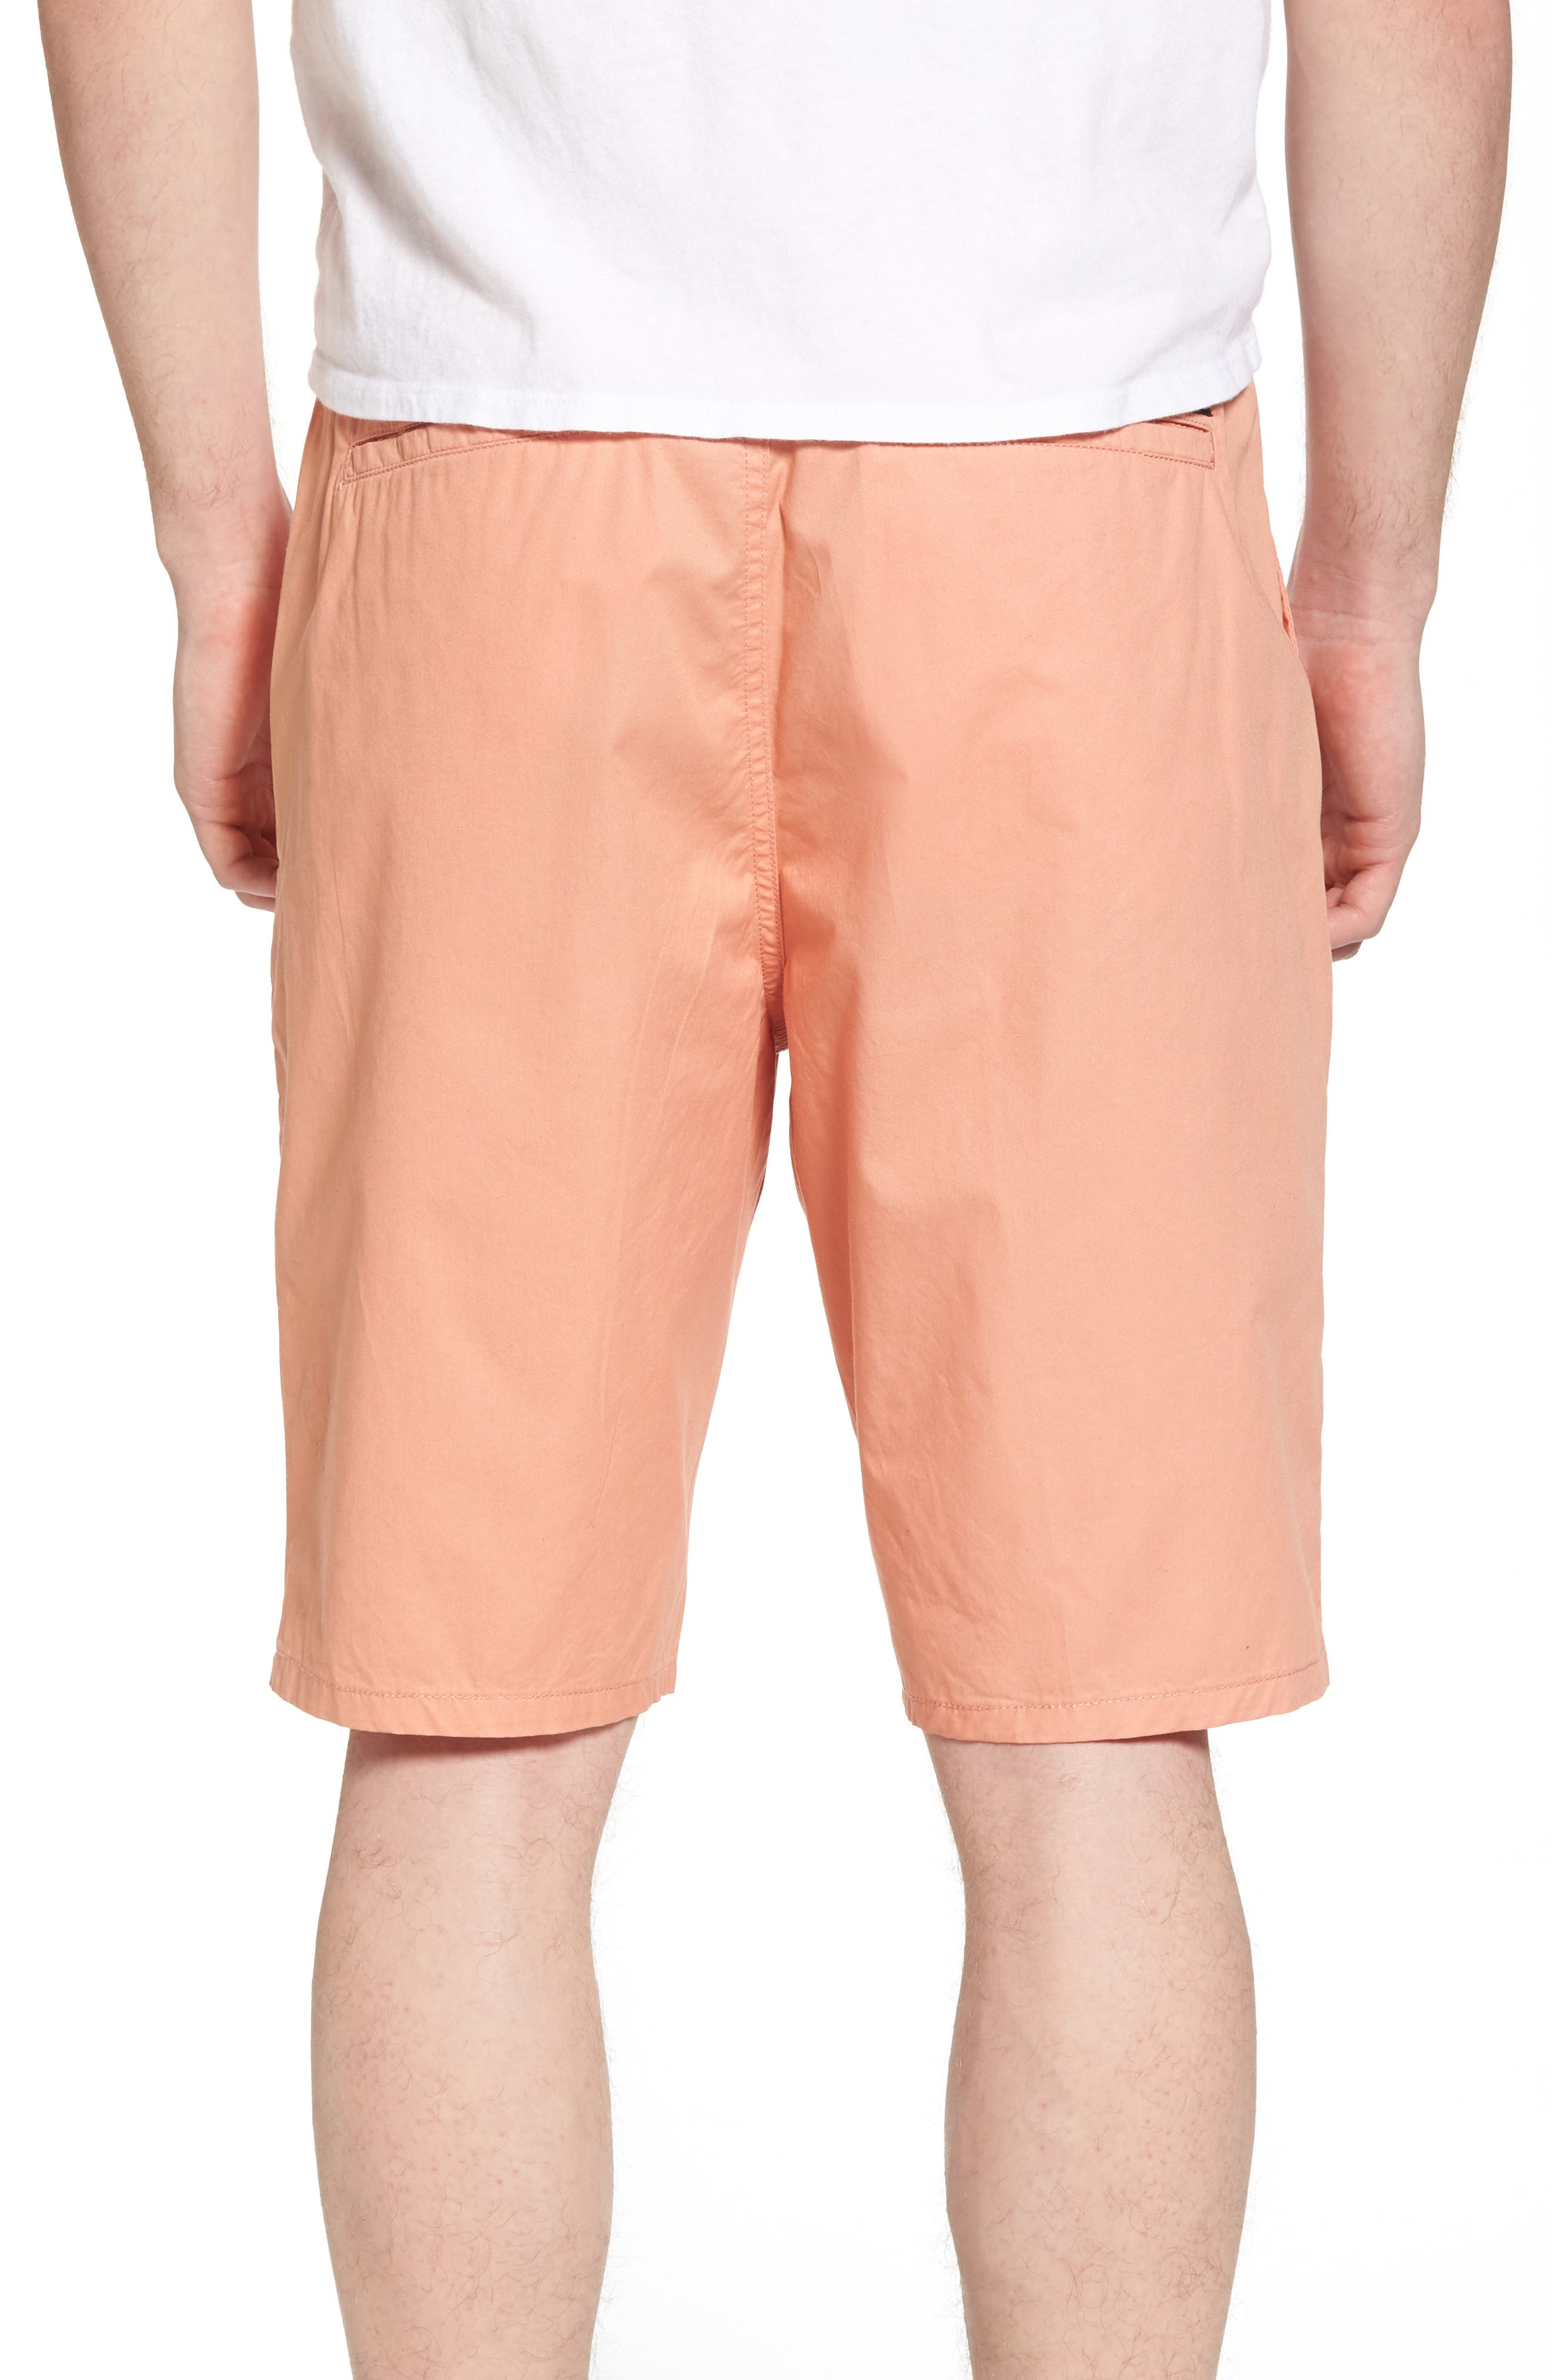 Straggler Light Shorts,                             Alternate thumbnail 2, color,